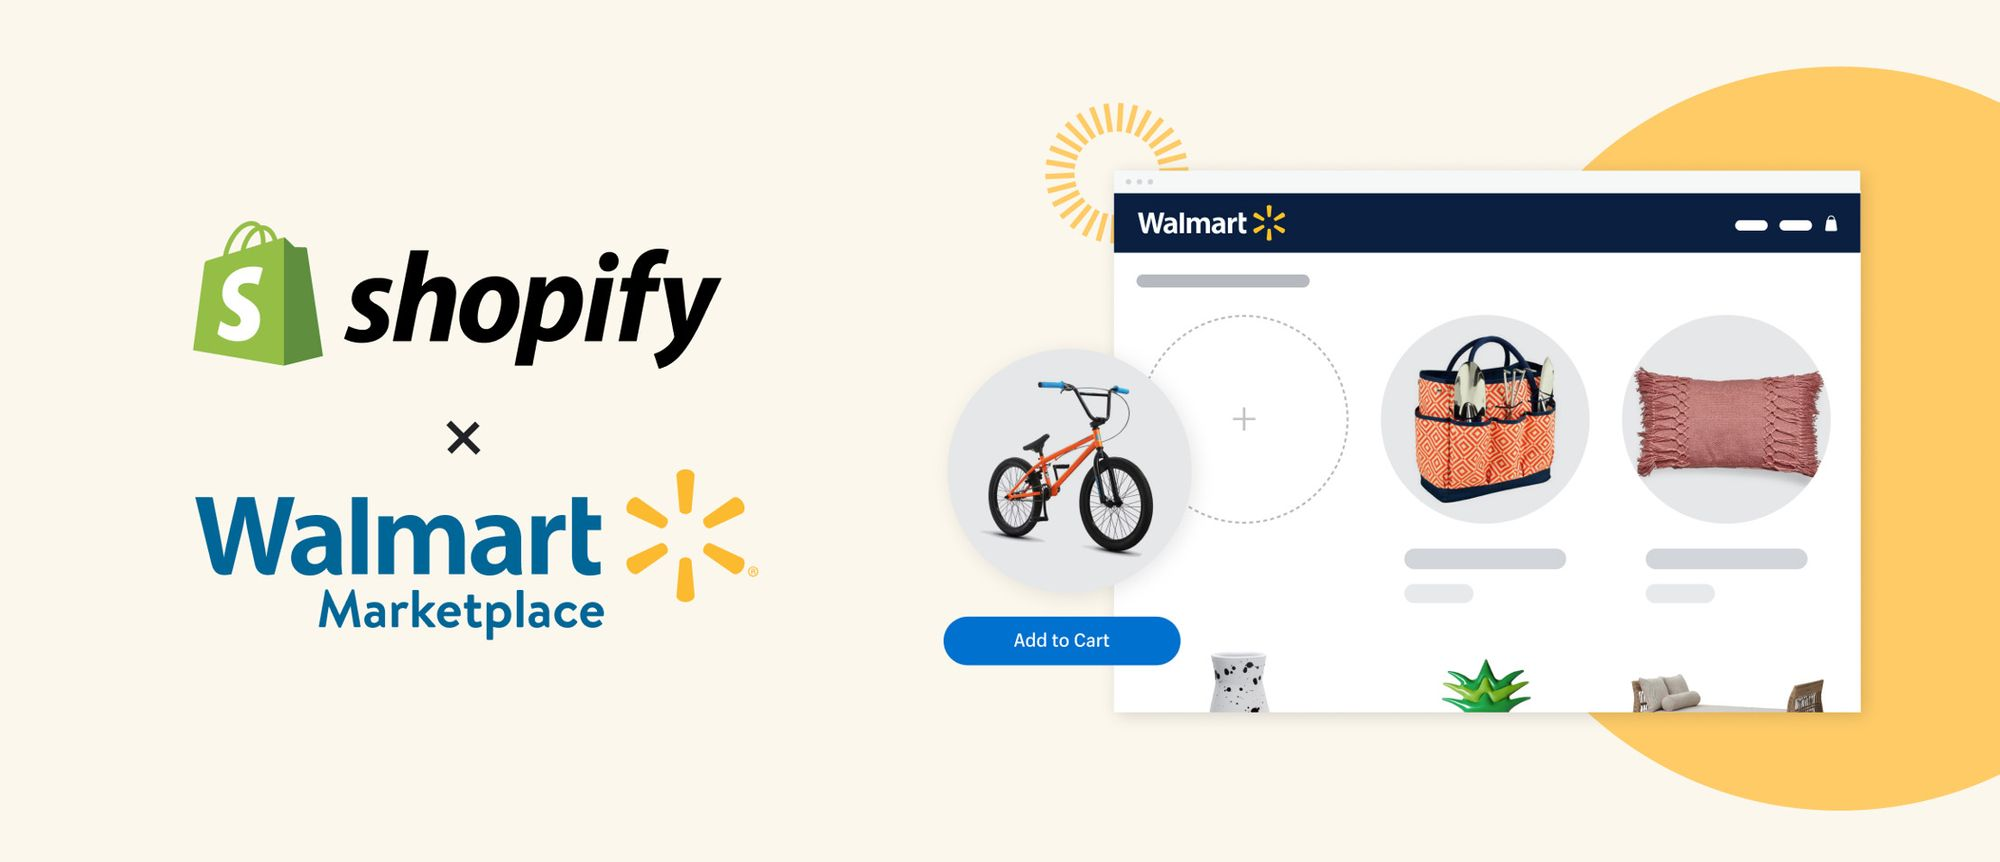 Shopify and Walmart partner